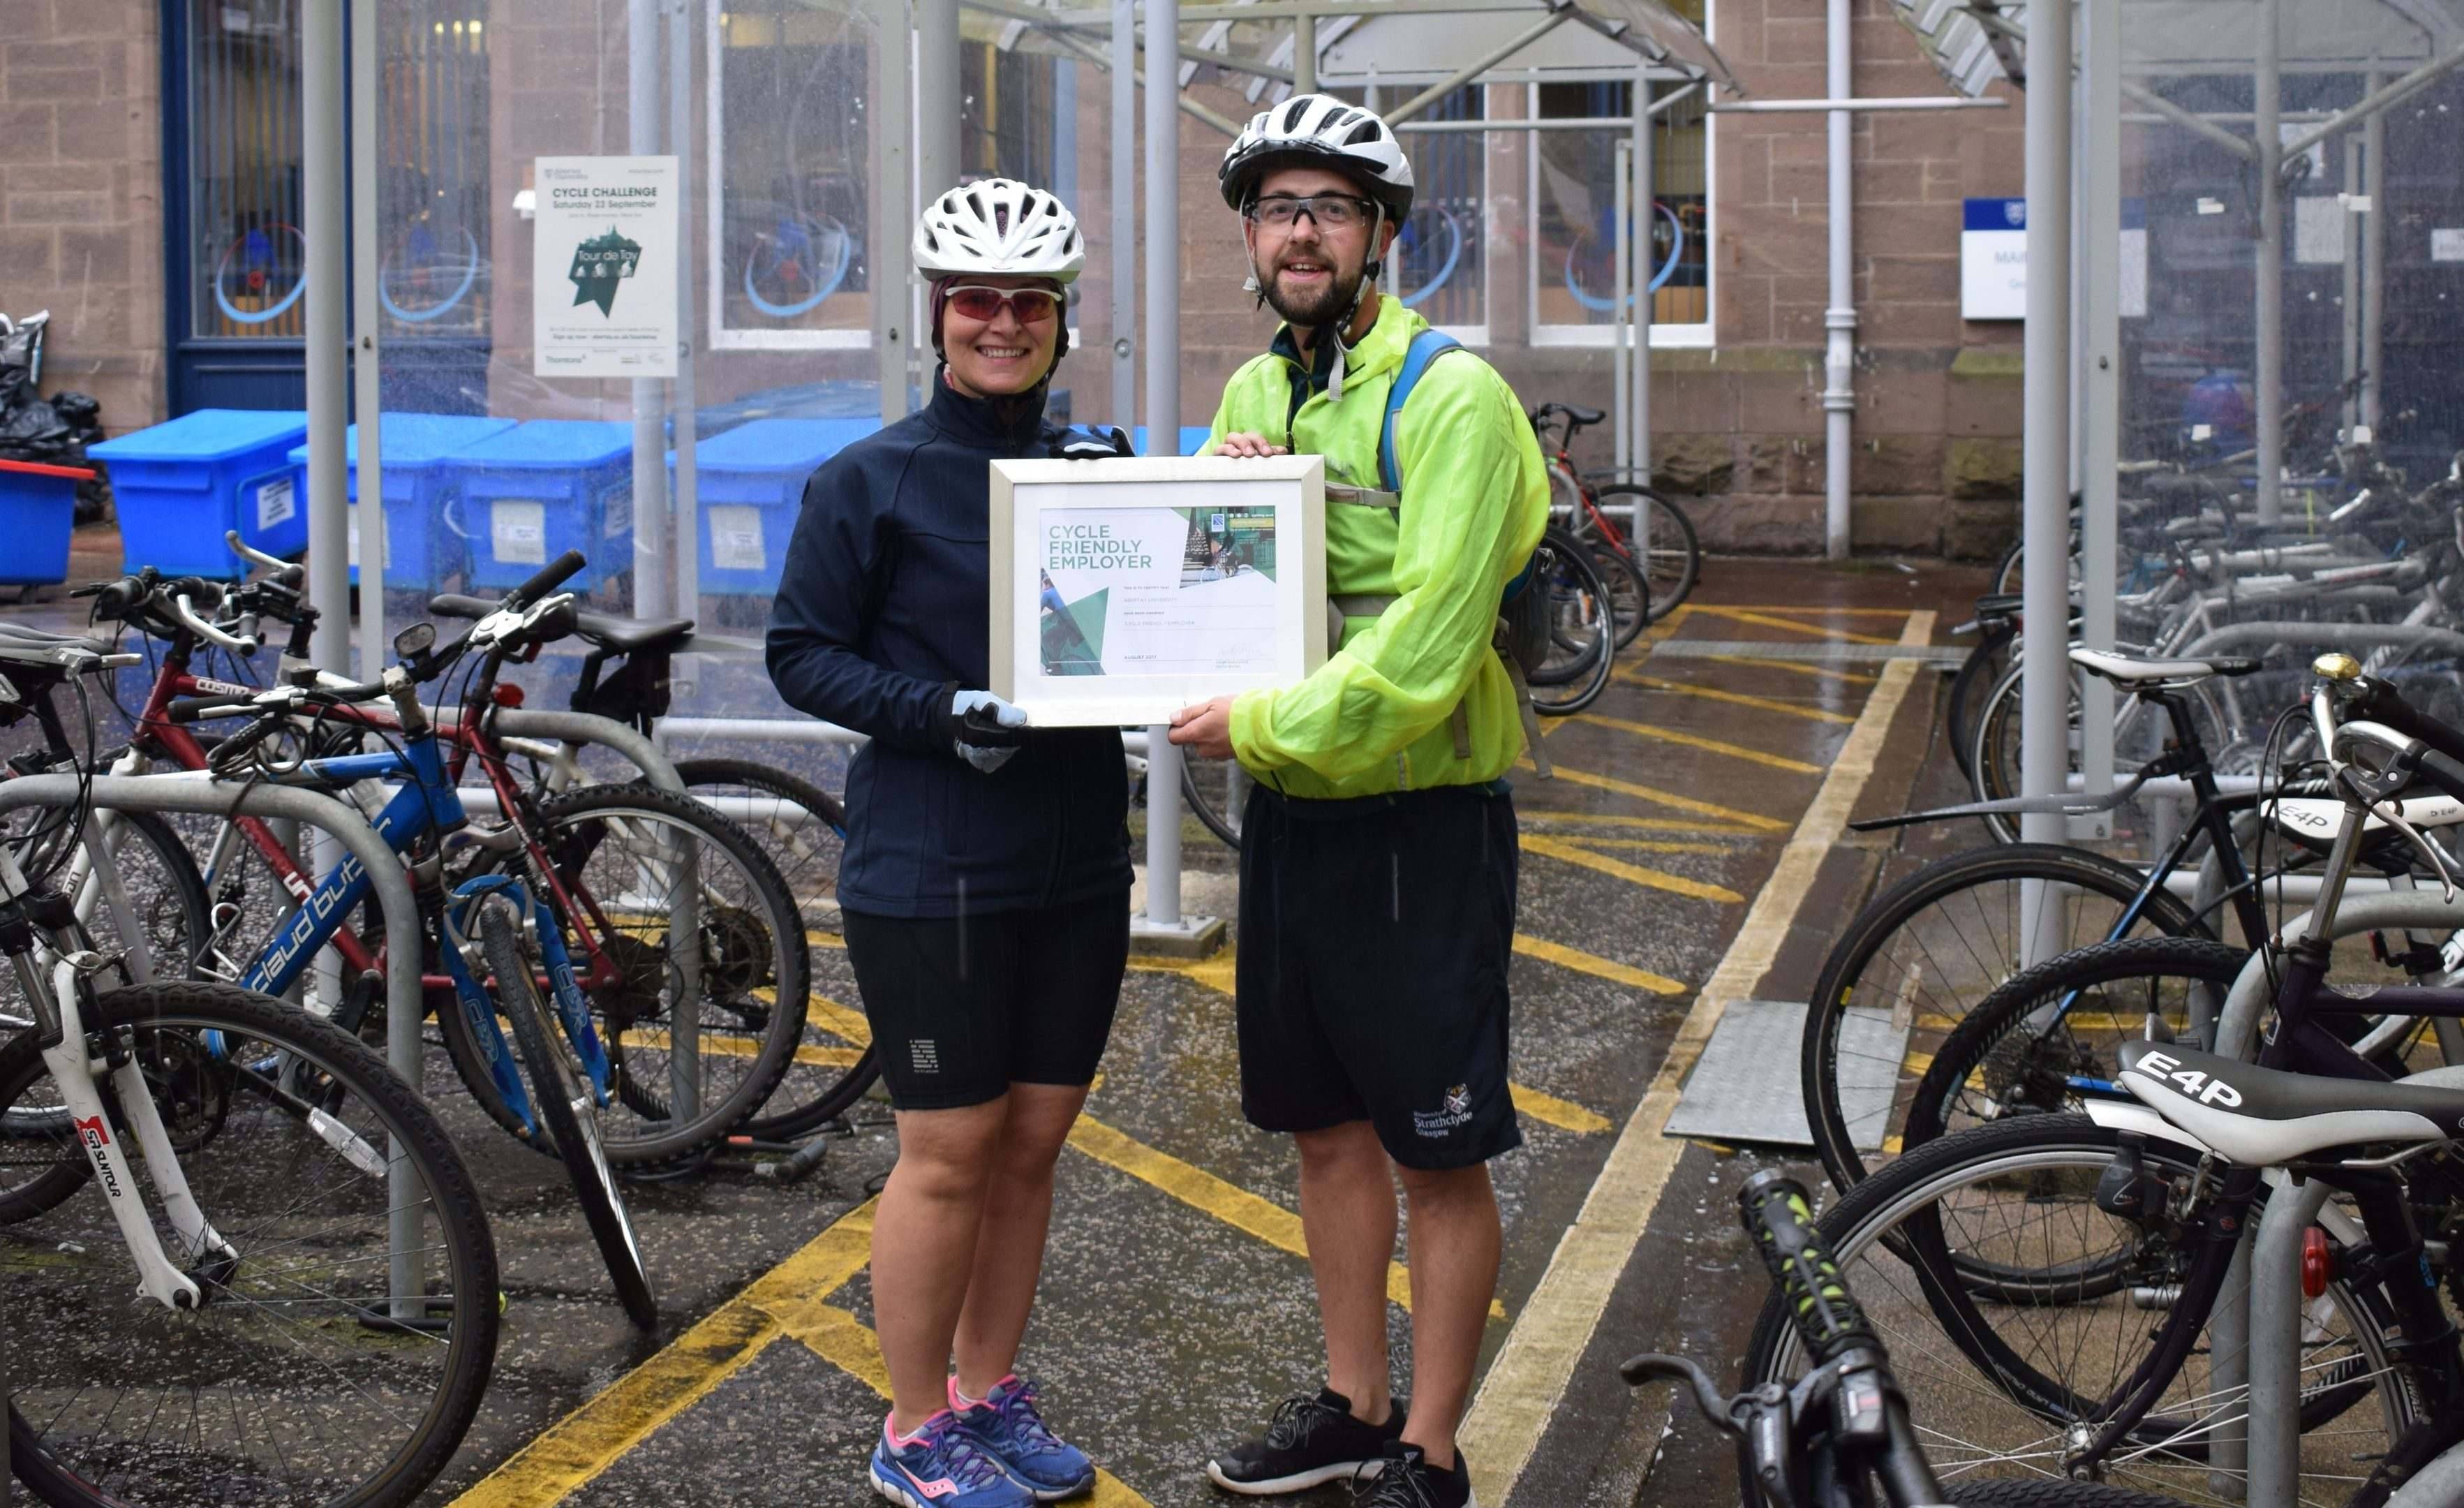 Business continuity and safety co-ordinator Shonagh McAlpine, and Dundee Academy of Sport teaching fellow Iain Stewart with the Cycling Scotland certificate.